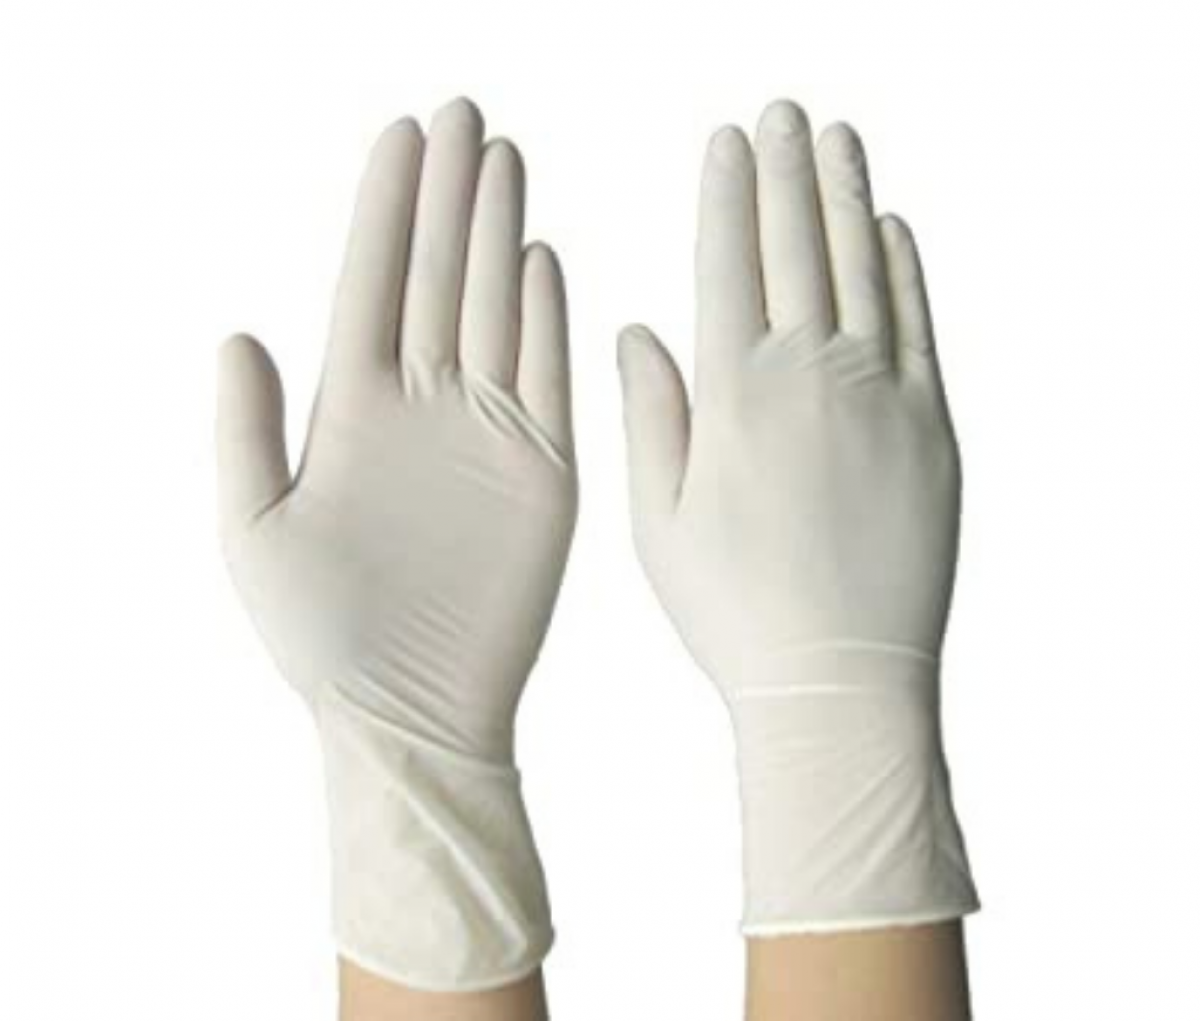 Sterile Surgical gloves No 7.5